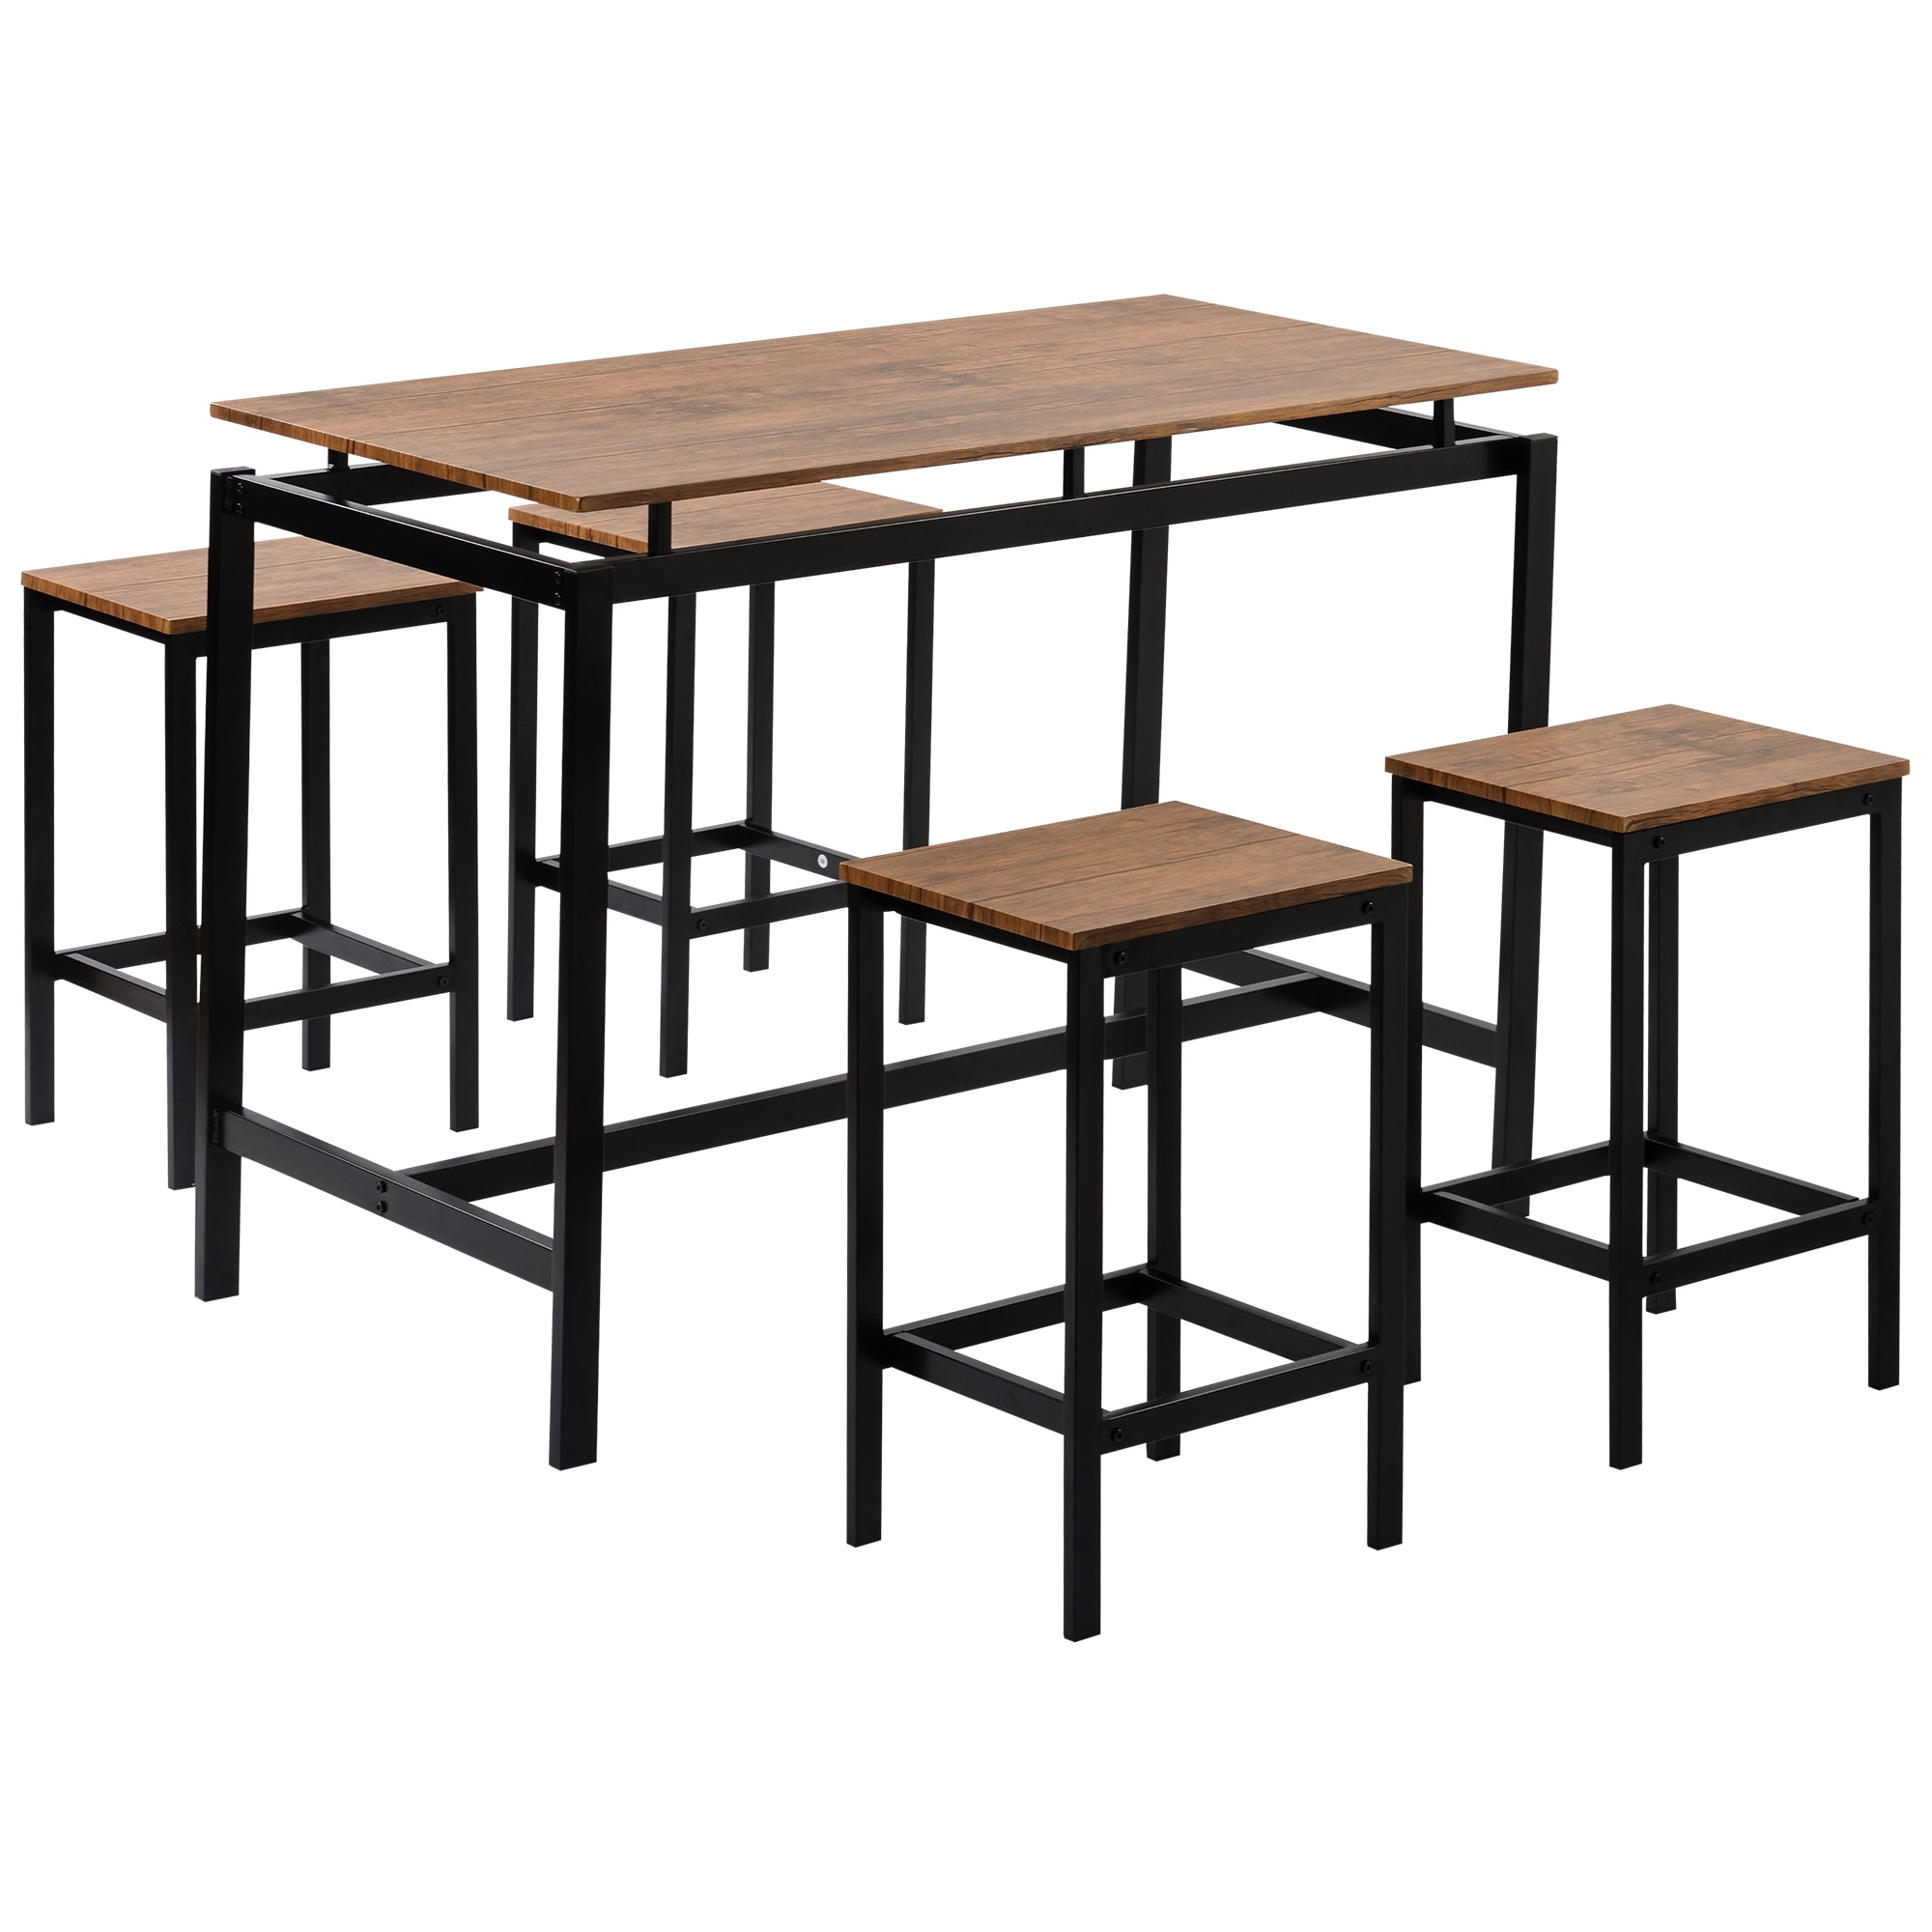 5 Piece Kitchen Set Counter Height Table Set Industrial Dining Table With 4 Chairs Home Furniture US Warehouse Fashion 5pcs dining chair set 4 chairs 1 dining table set wooden metal furniture brown black beige home kitchen office furniture